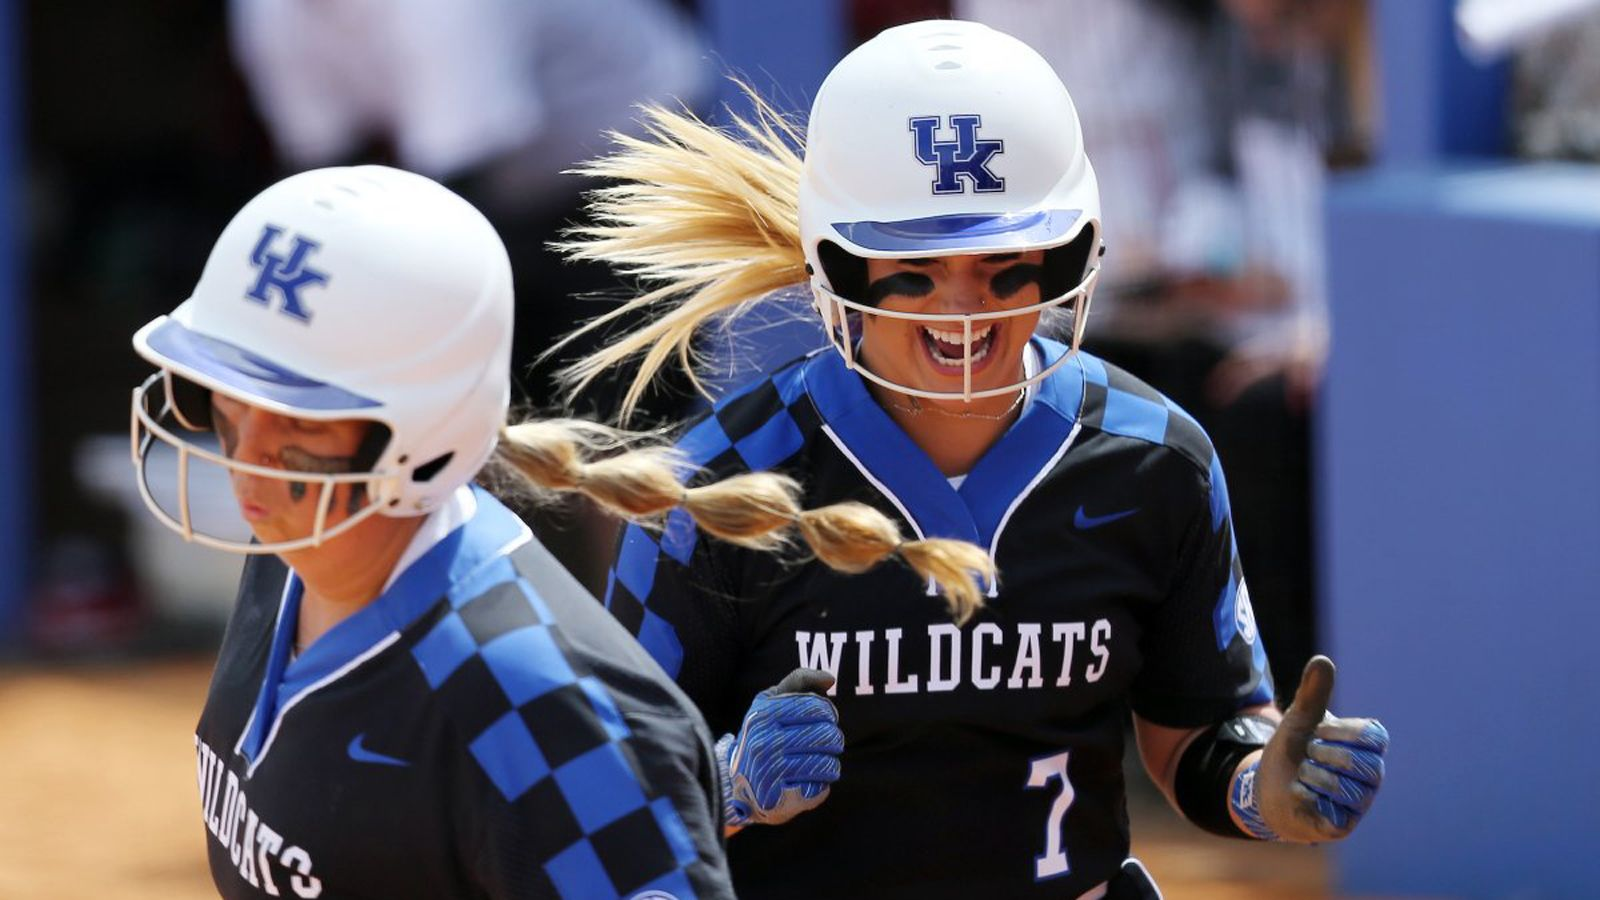 No. 18 Wildcats secure 4-2 victory over No. 7 Bulldogs